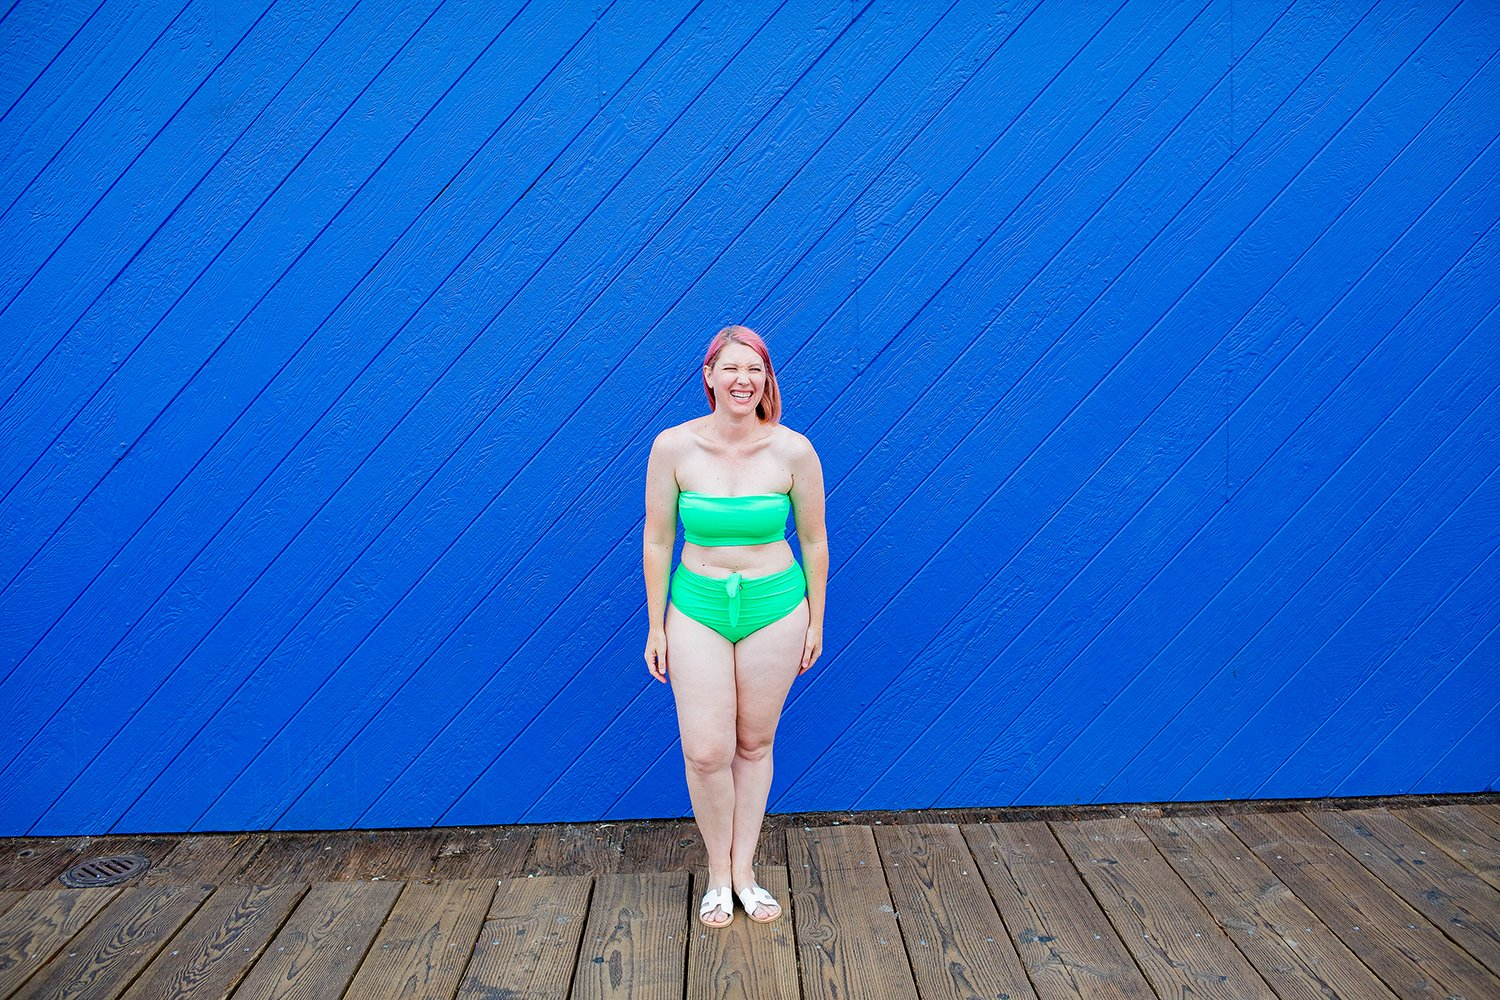 Gearing up for a beach or pool day? These Awesome Bikinis for Pear Shaped Bodies are perfect for vacation!